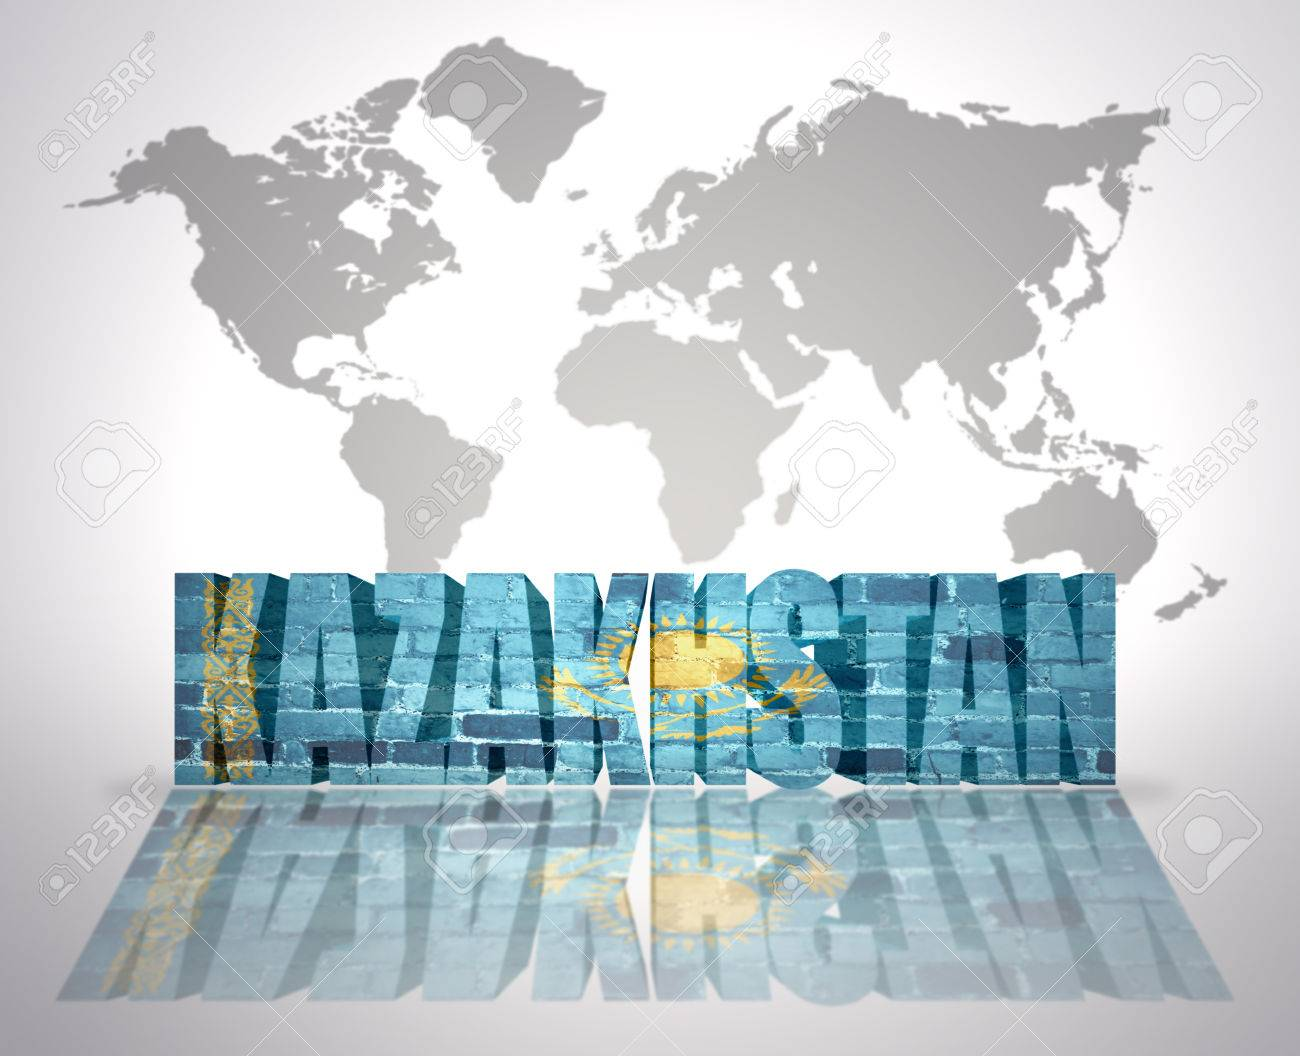 Word kazakhstan with kazakh flag on a world map background stock word kazakhstan with kazakh flag on a world map background stock photo 33929295 gumiabroncs Images